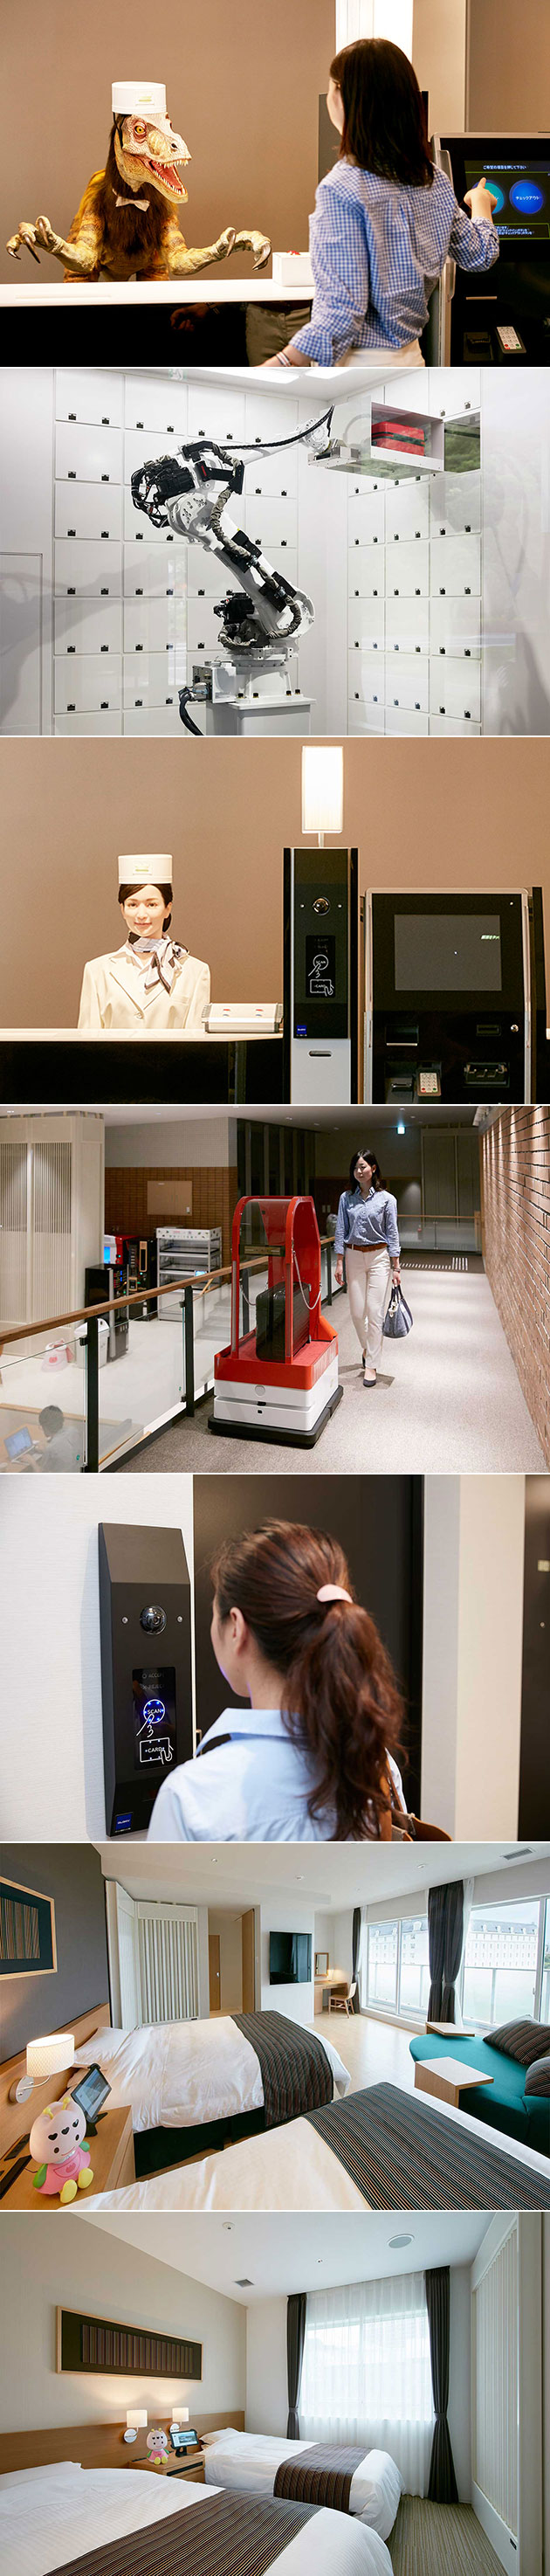 Hotel Run by Robots